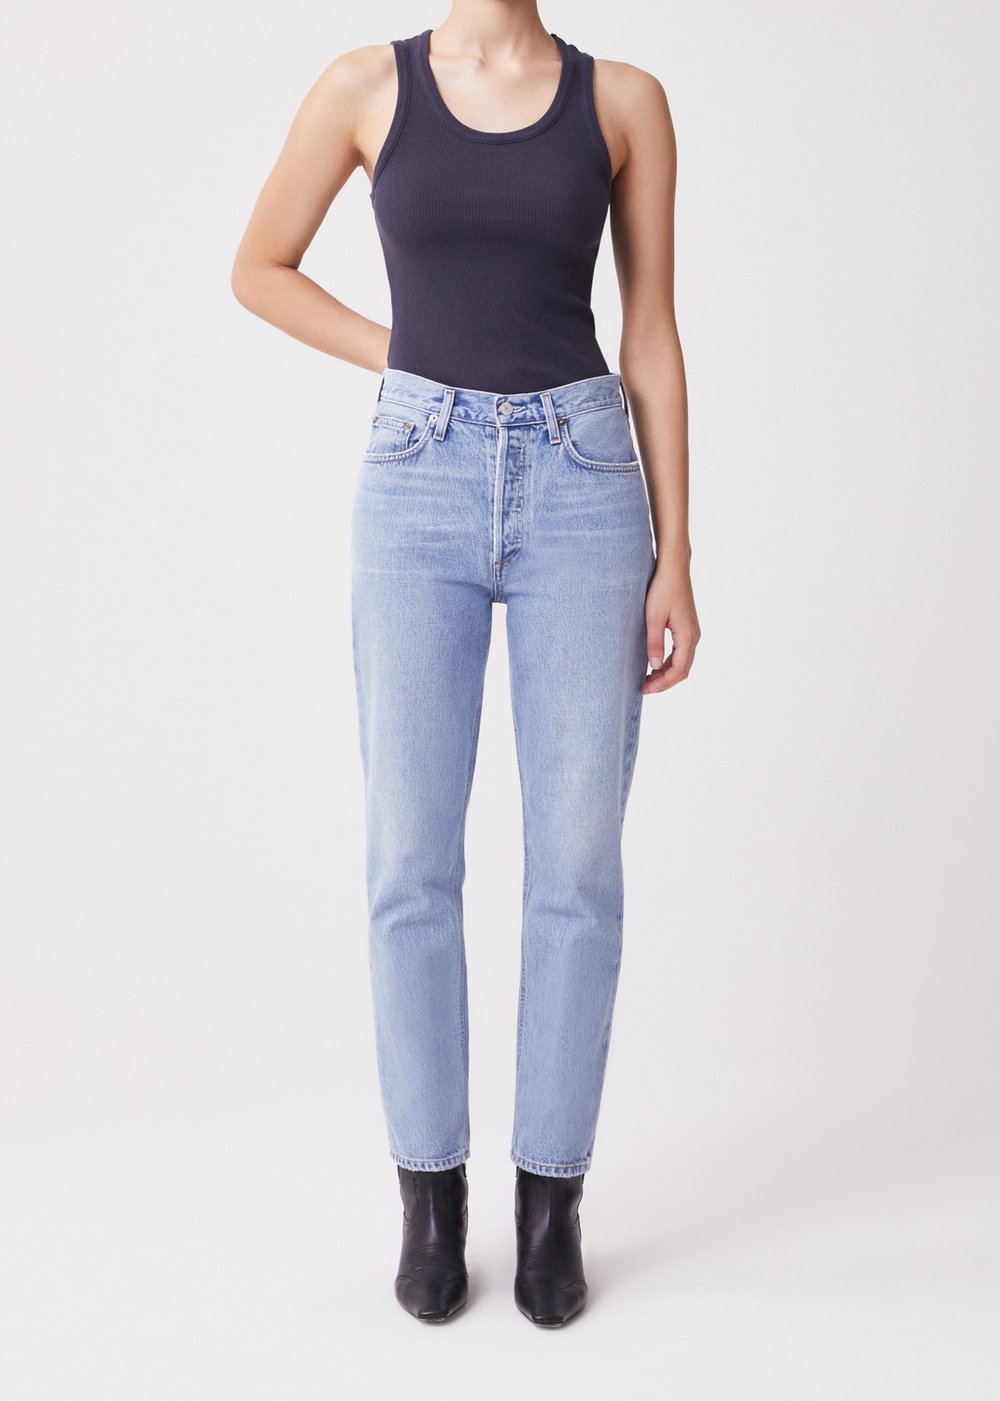 Jeans, Fen, Agolde, Relaxed Fit,